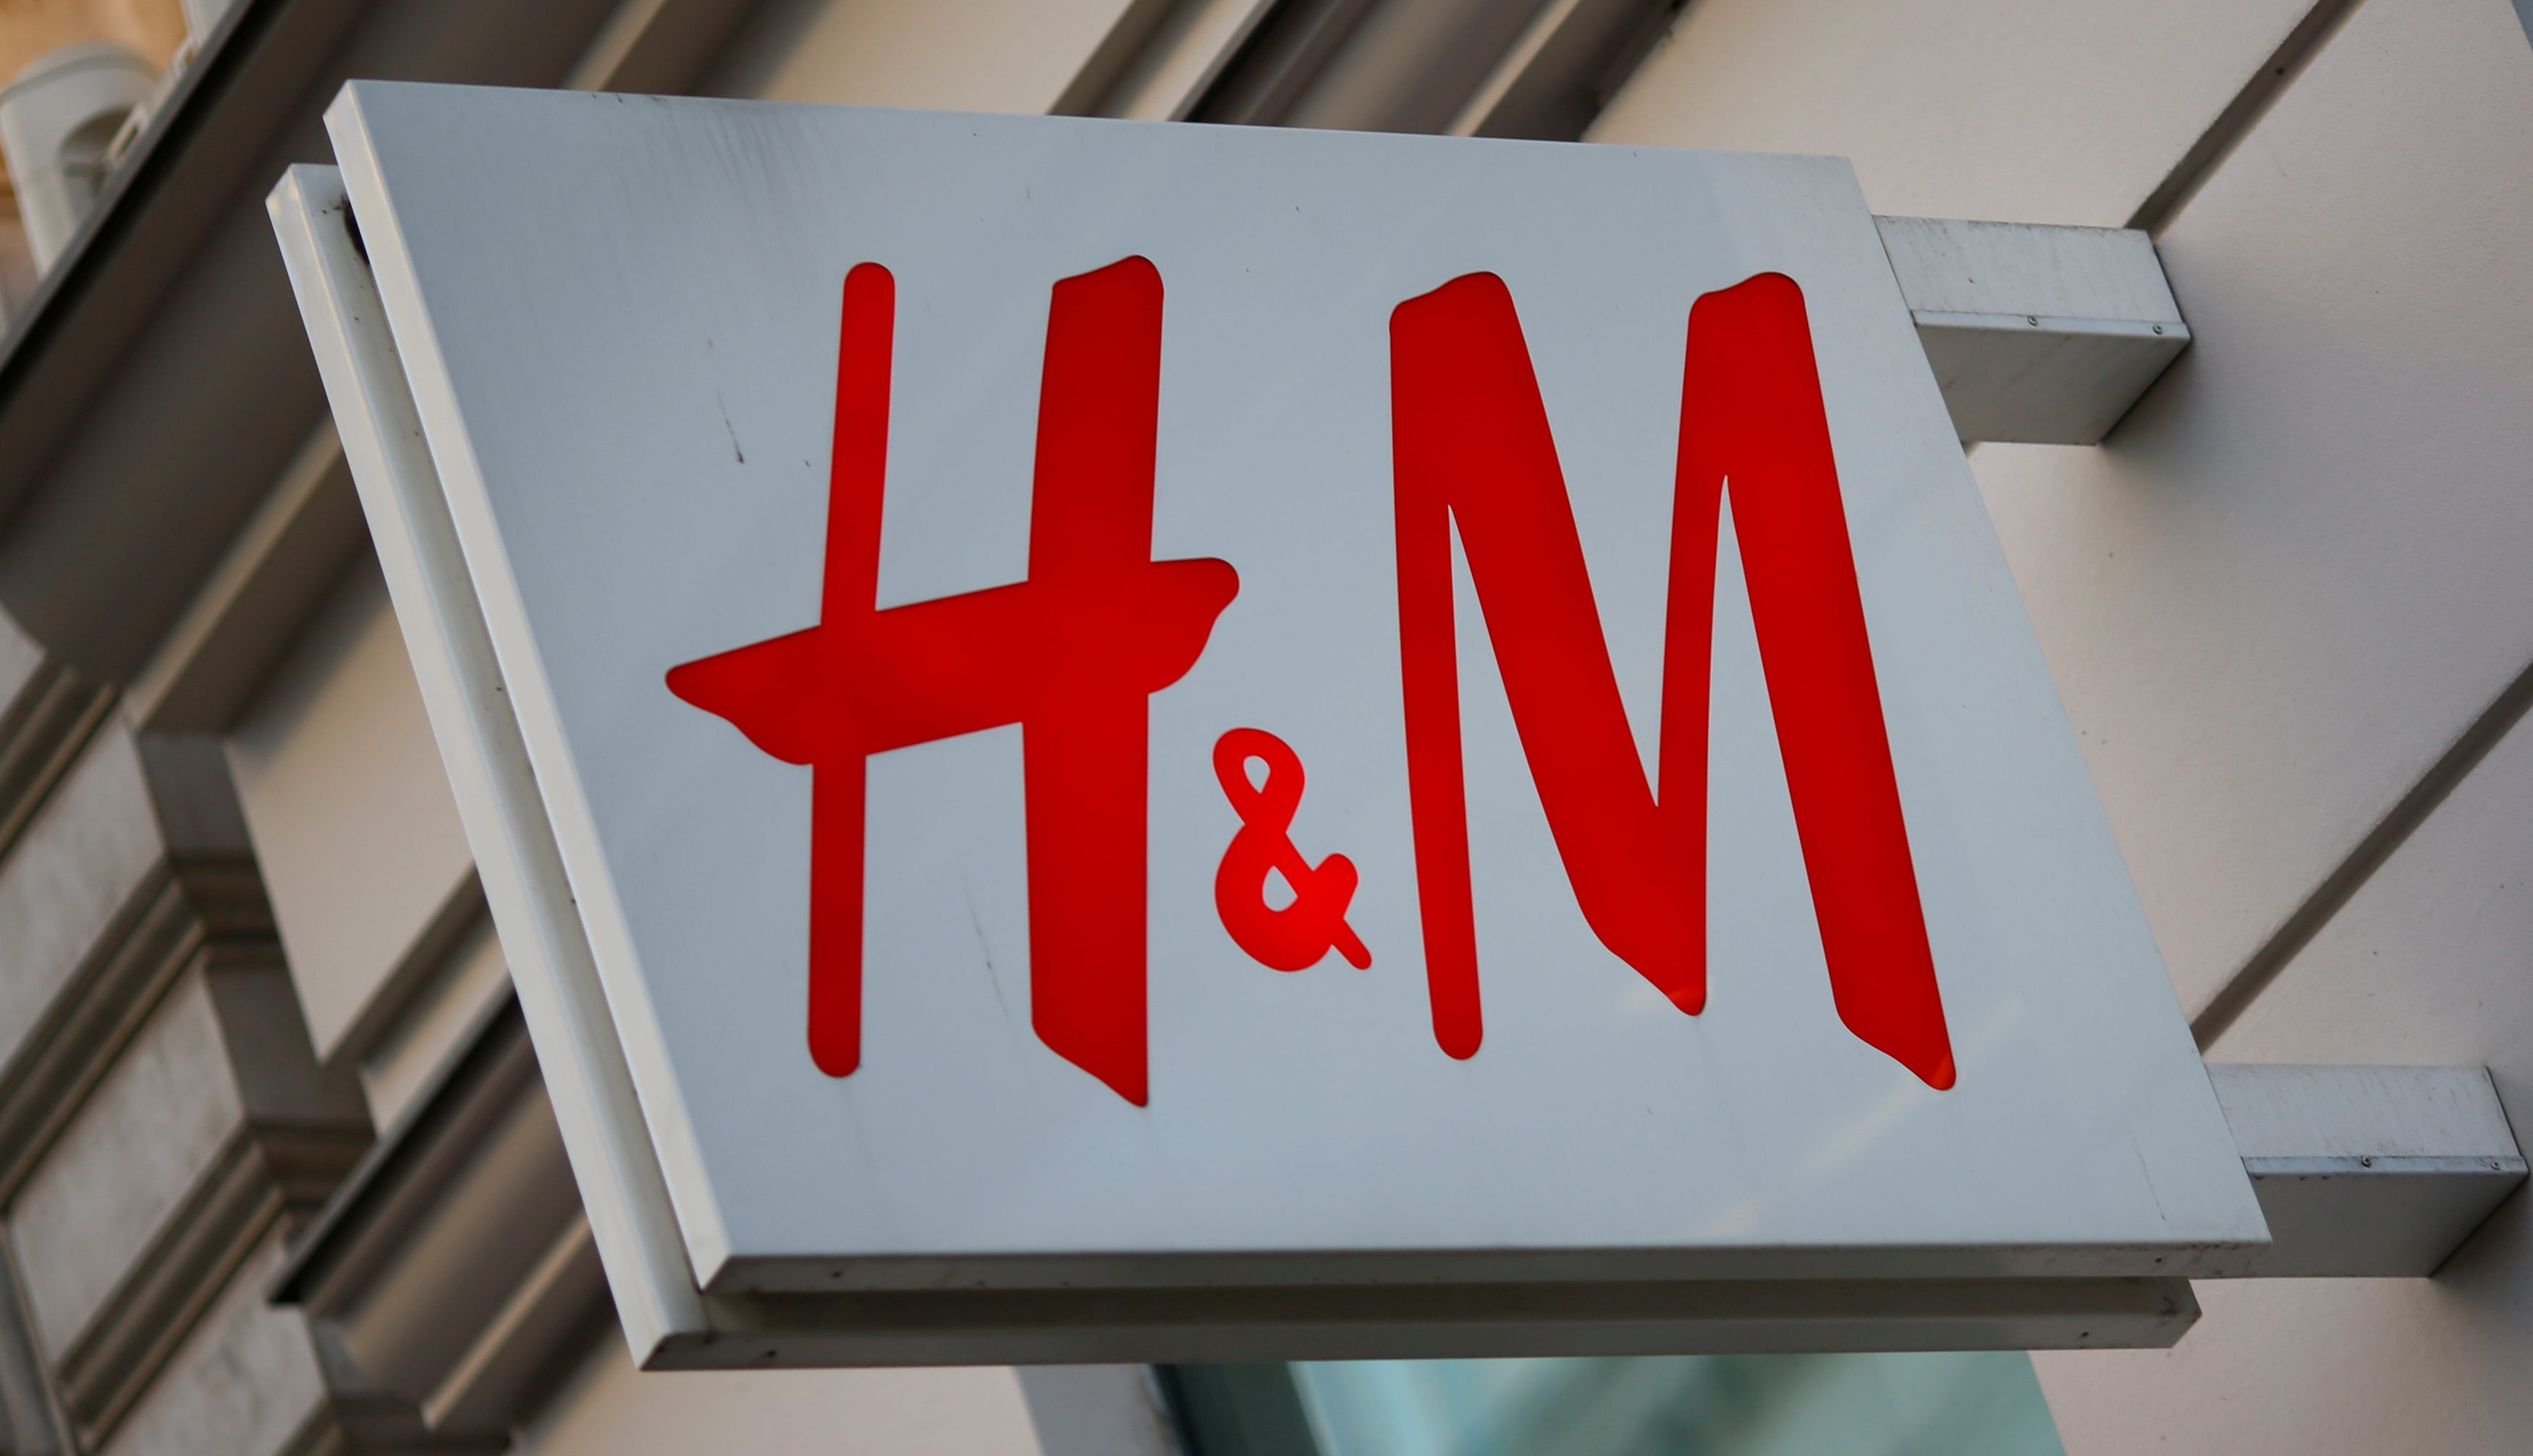 Hm hmb profits plunge as shoppers skip its stores and go online the logo of swedish fashion label hm is seen outside a store in vienna austria stopboris Image collections